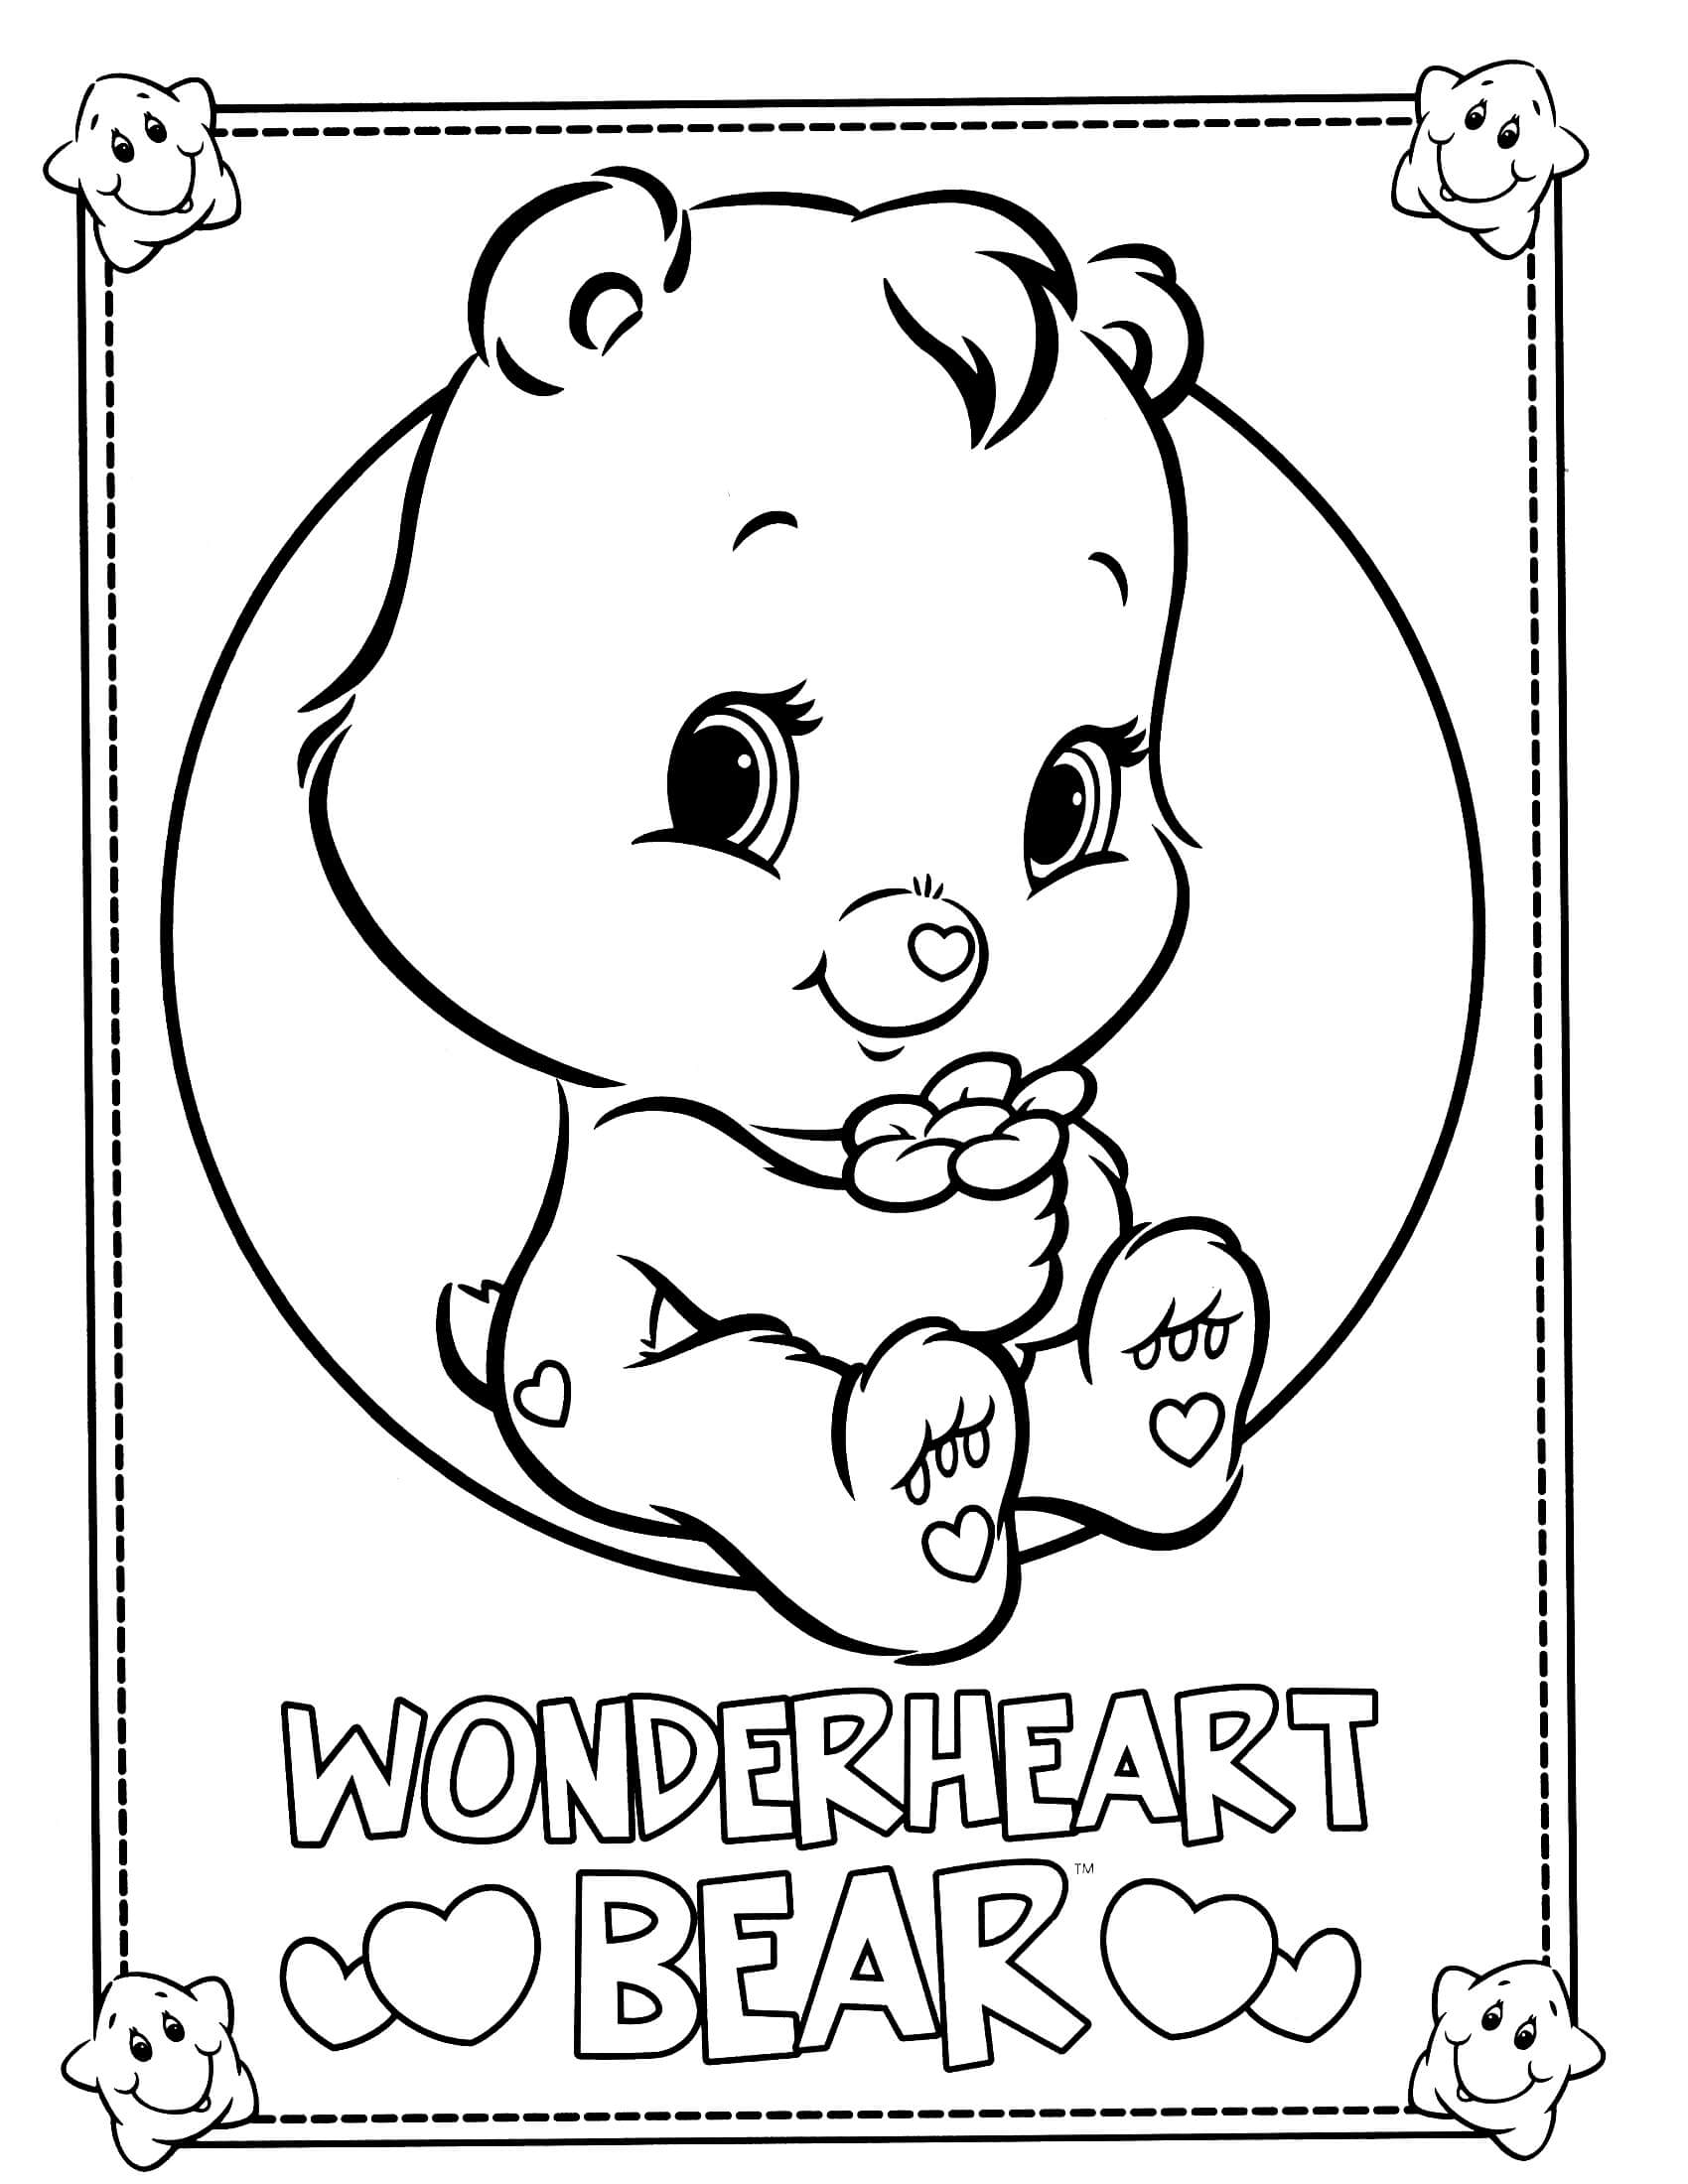 25 Strawberry Shortcake Coloring Pages Printable FREE COLORING Care Bears 34